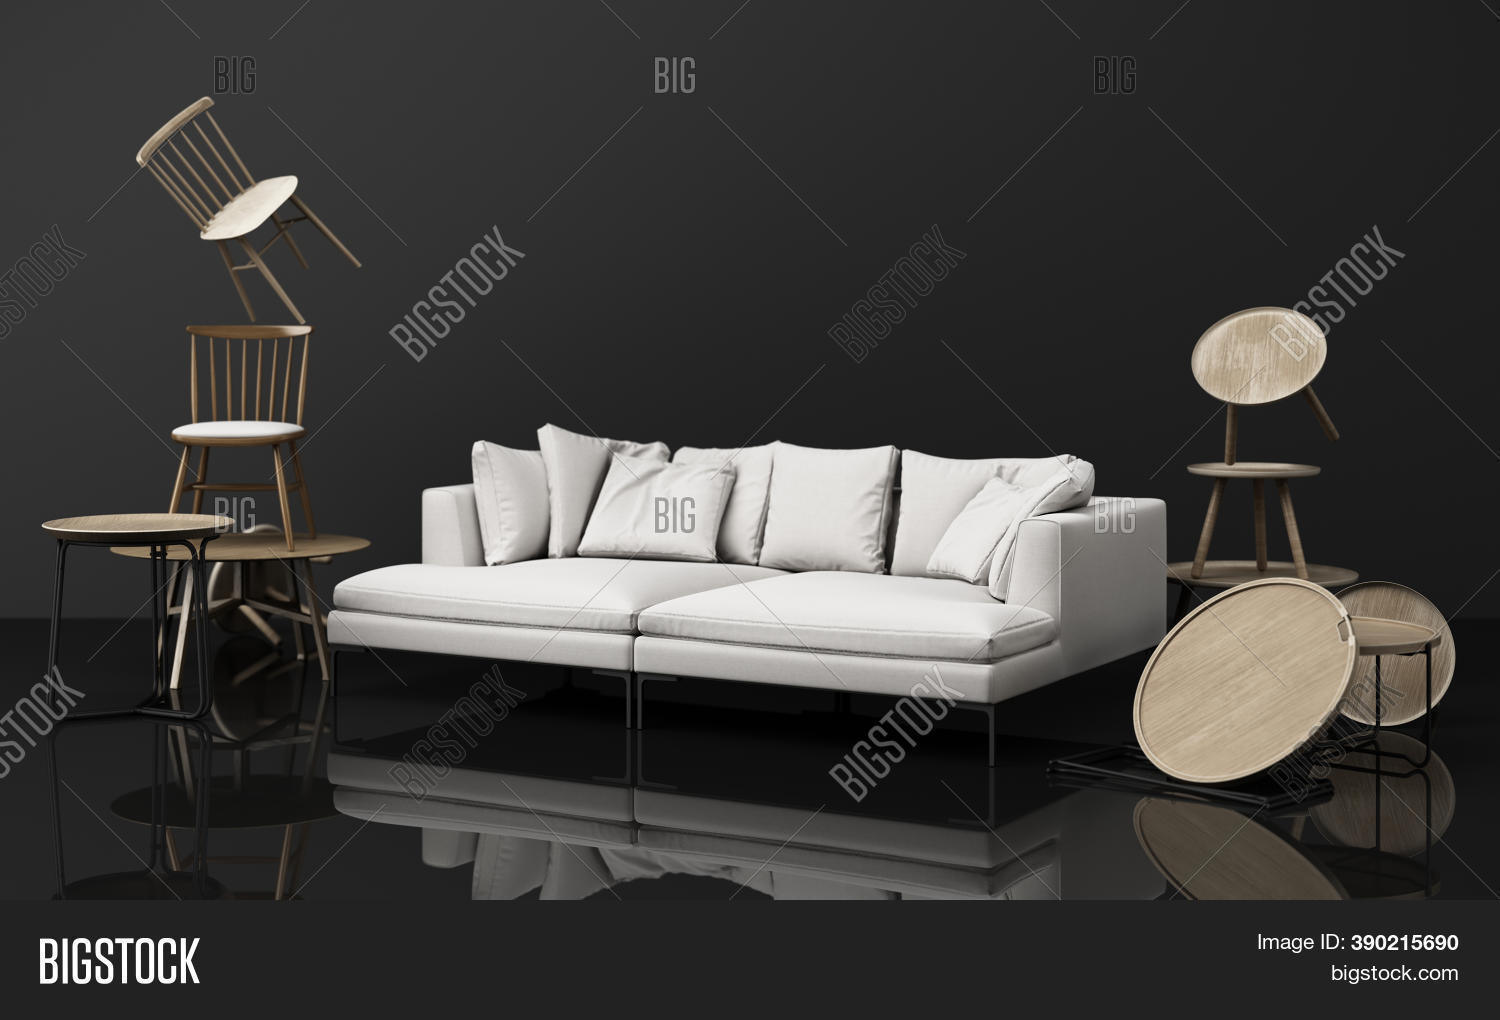 Chairs Coffee Table Image Photo Free Trial Bigstock